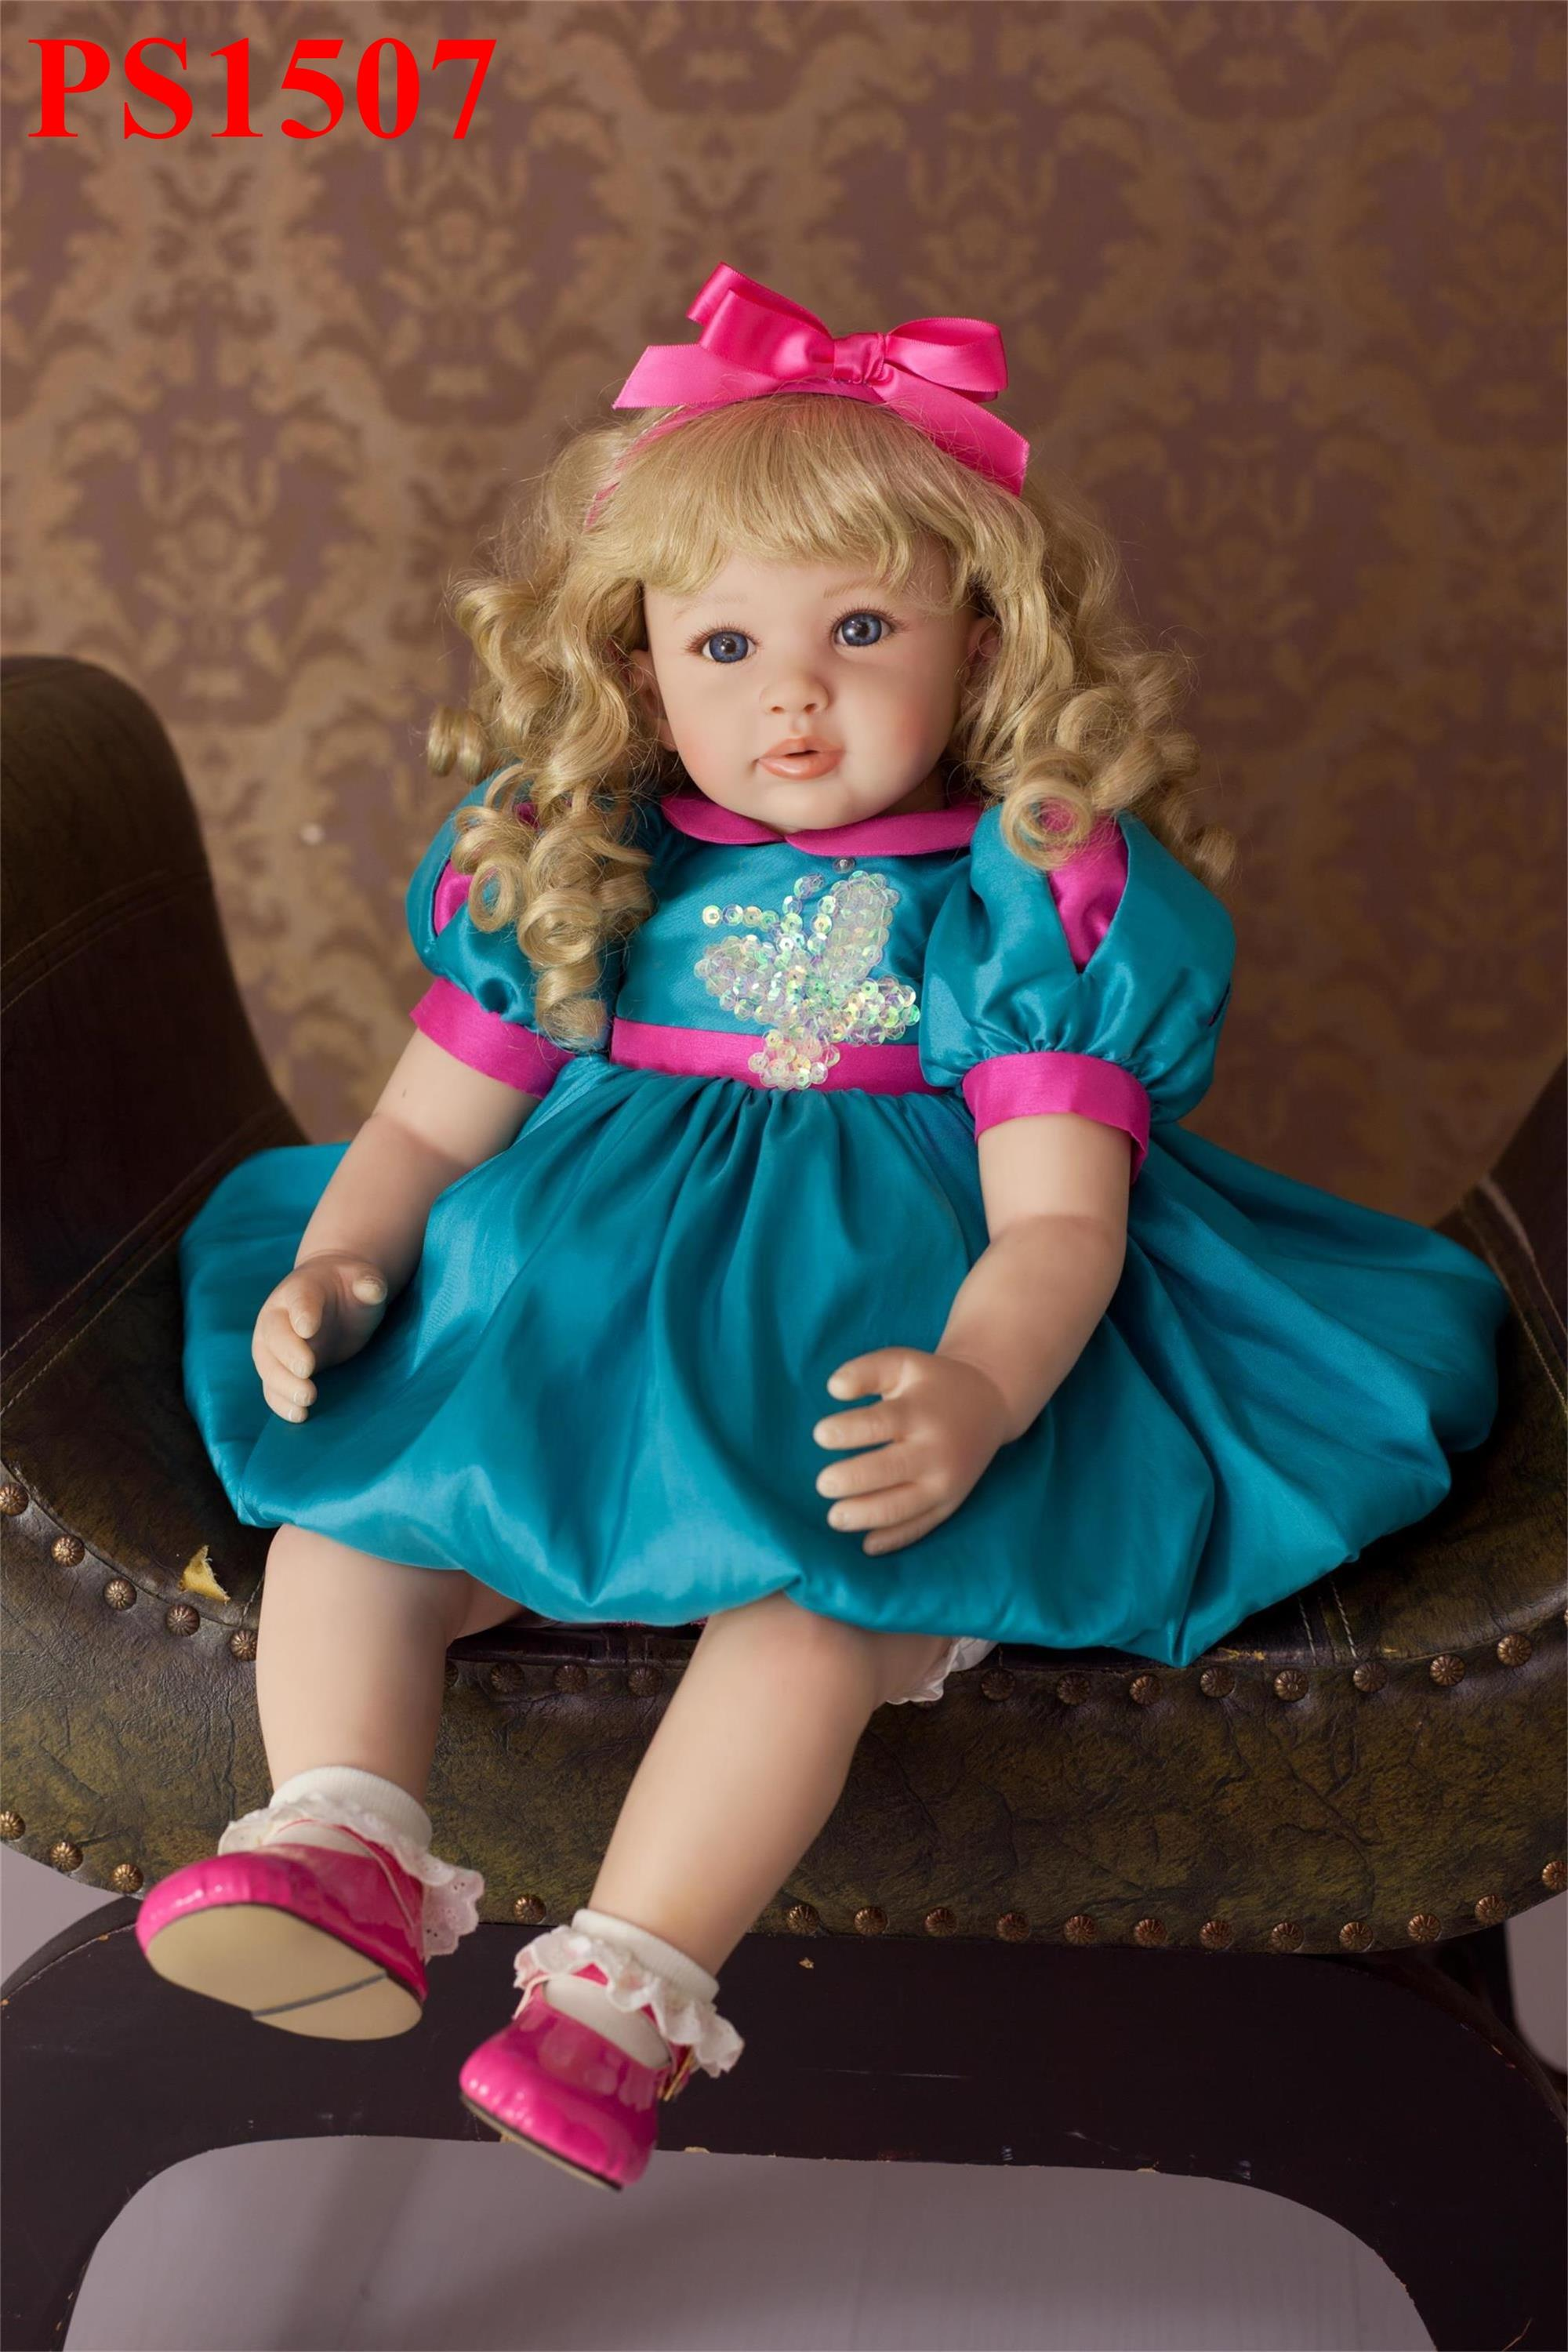 20 Inches Silicone Doll Reborn Lifelike Baby Fashion Kids Toys